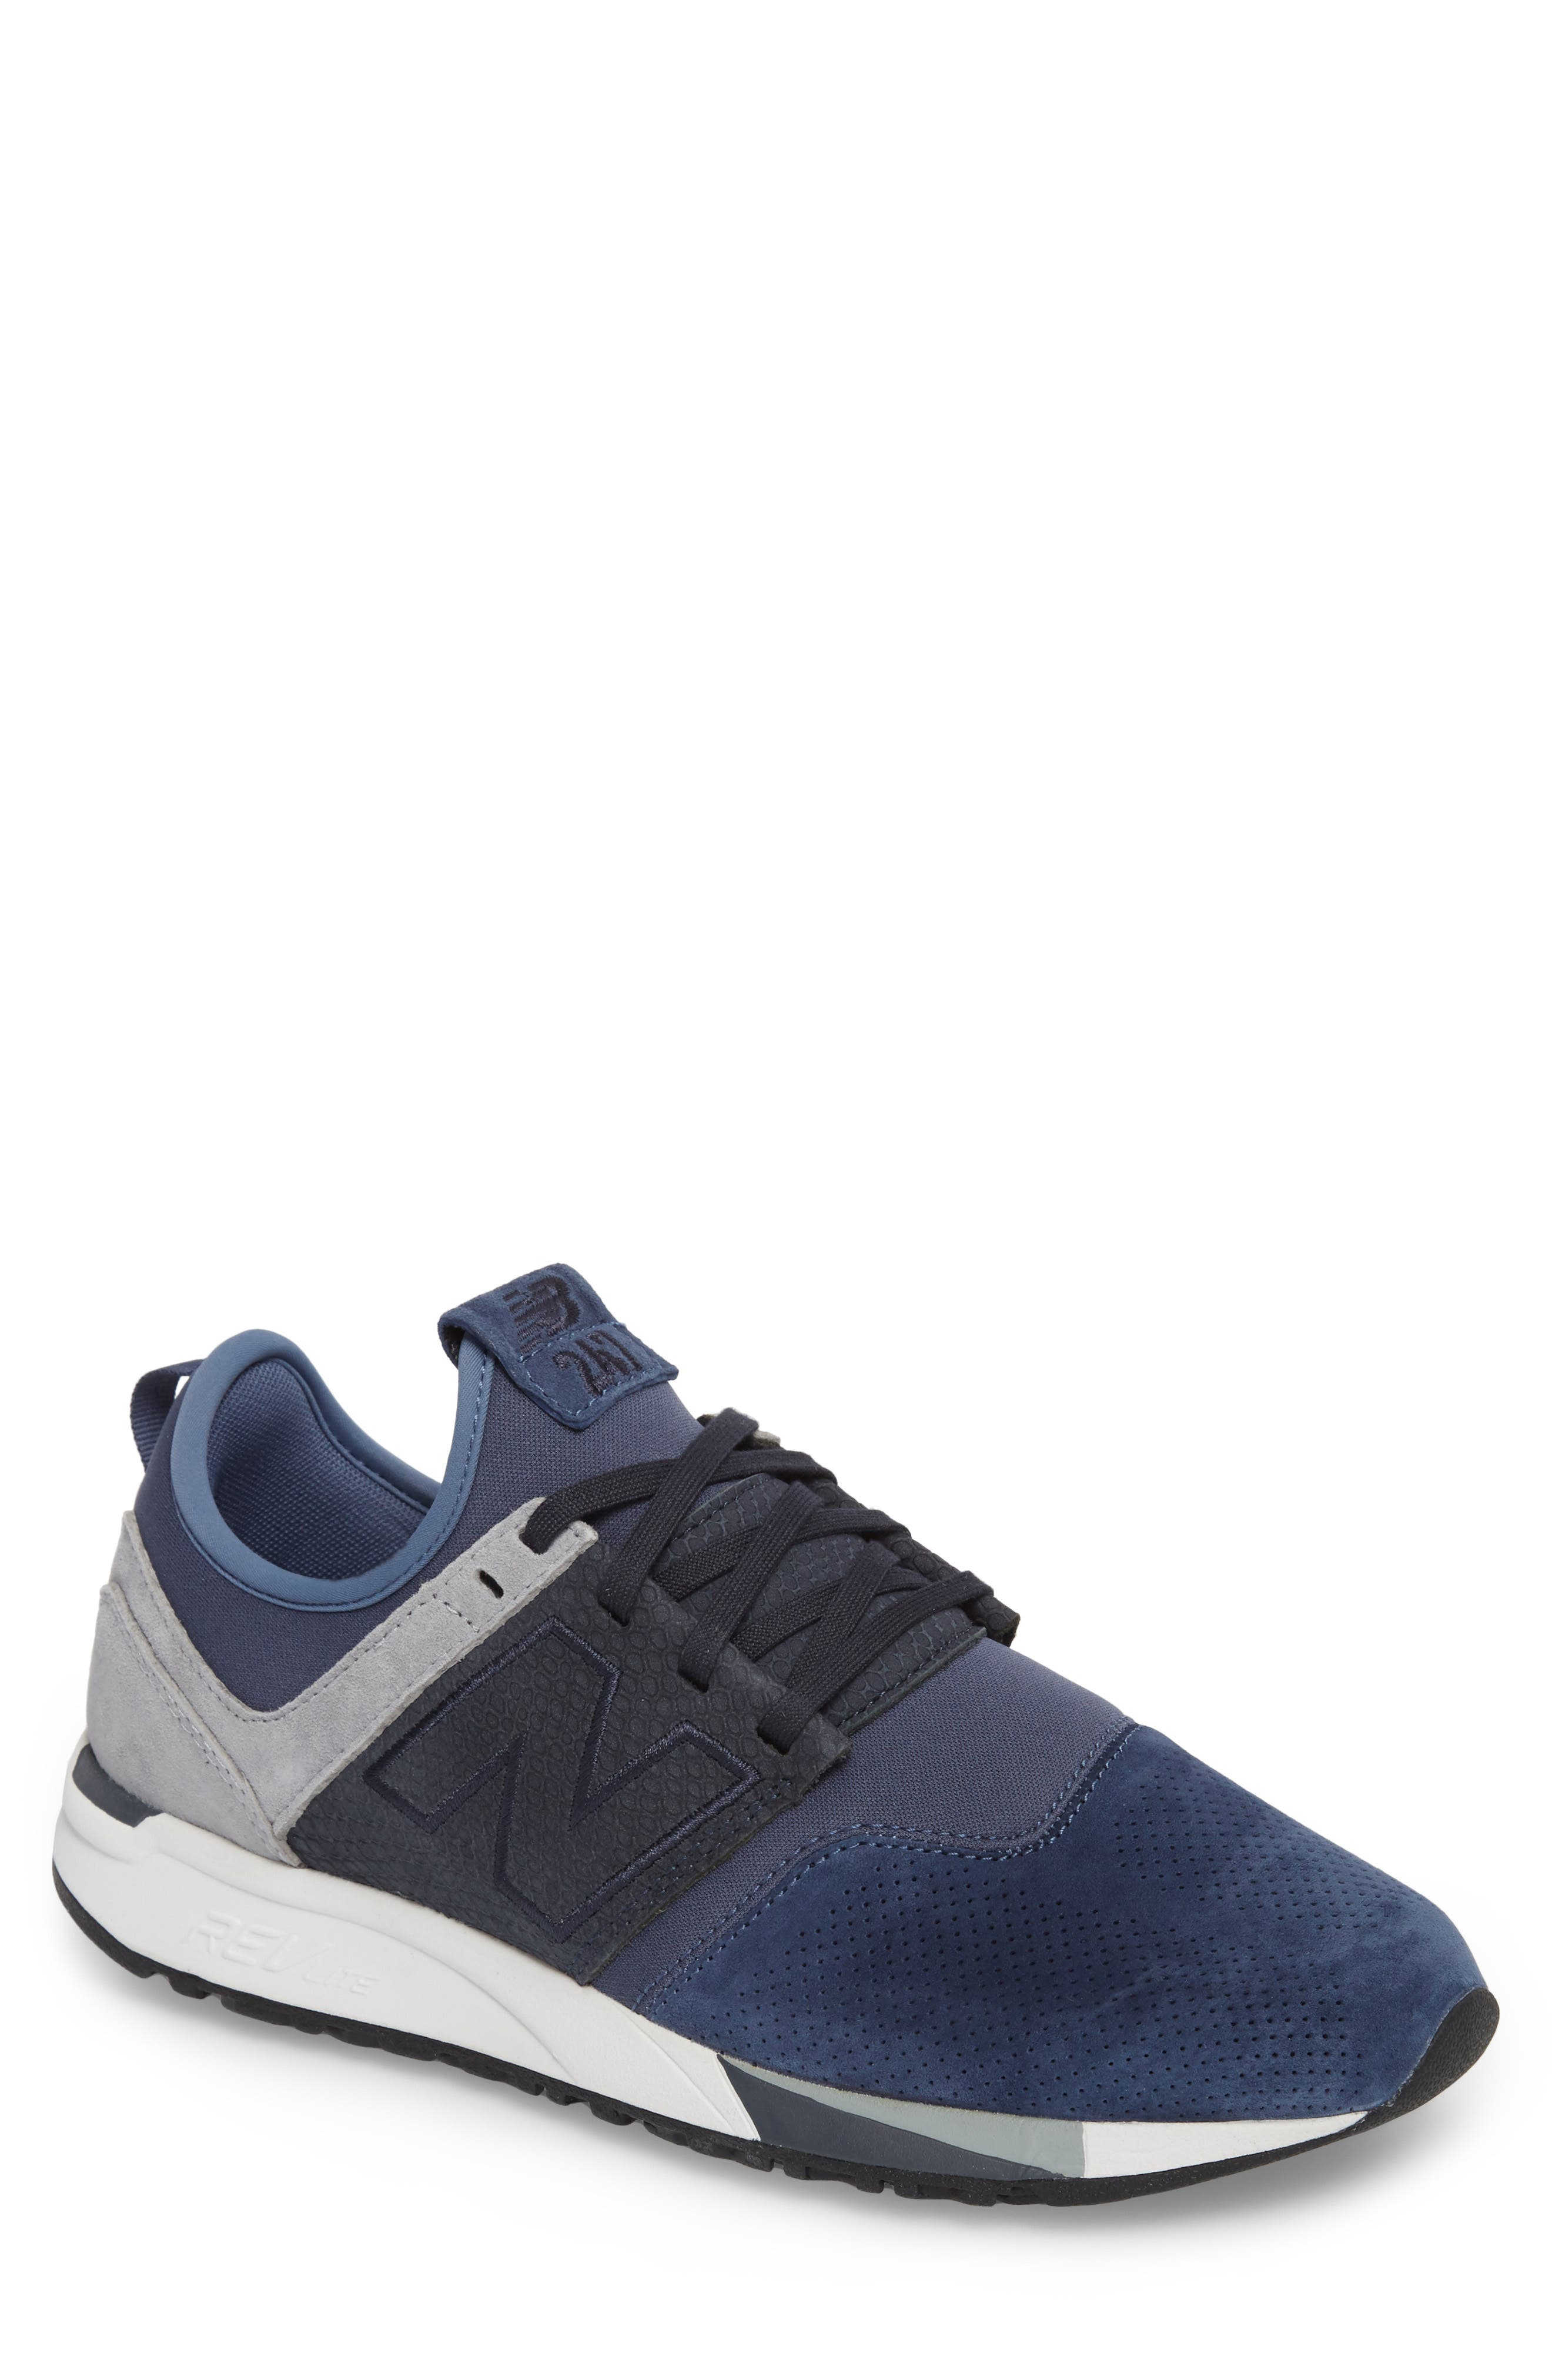 247 Luxe Sneaker,                         Main,                         color, Blue